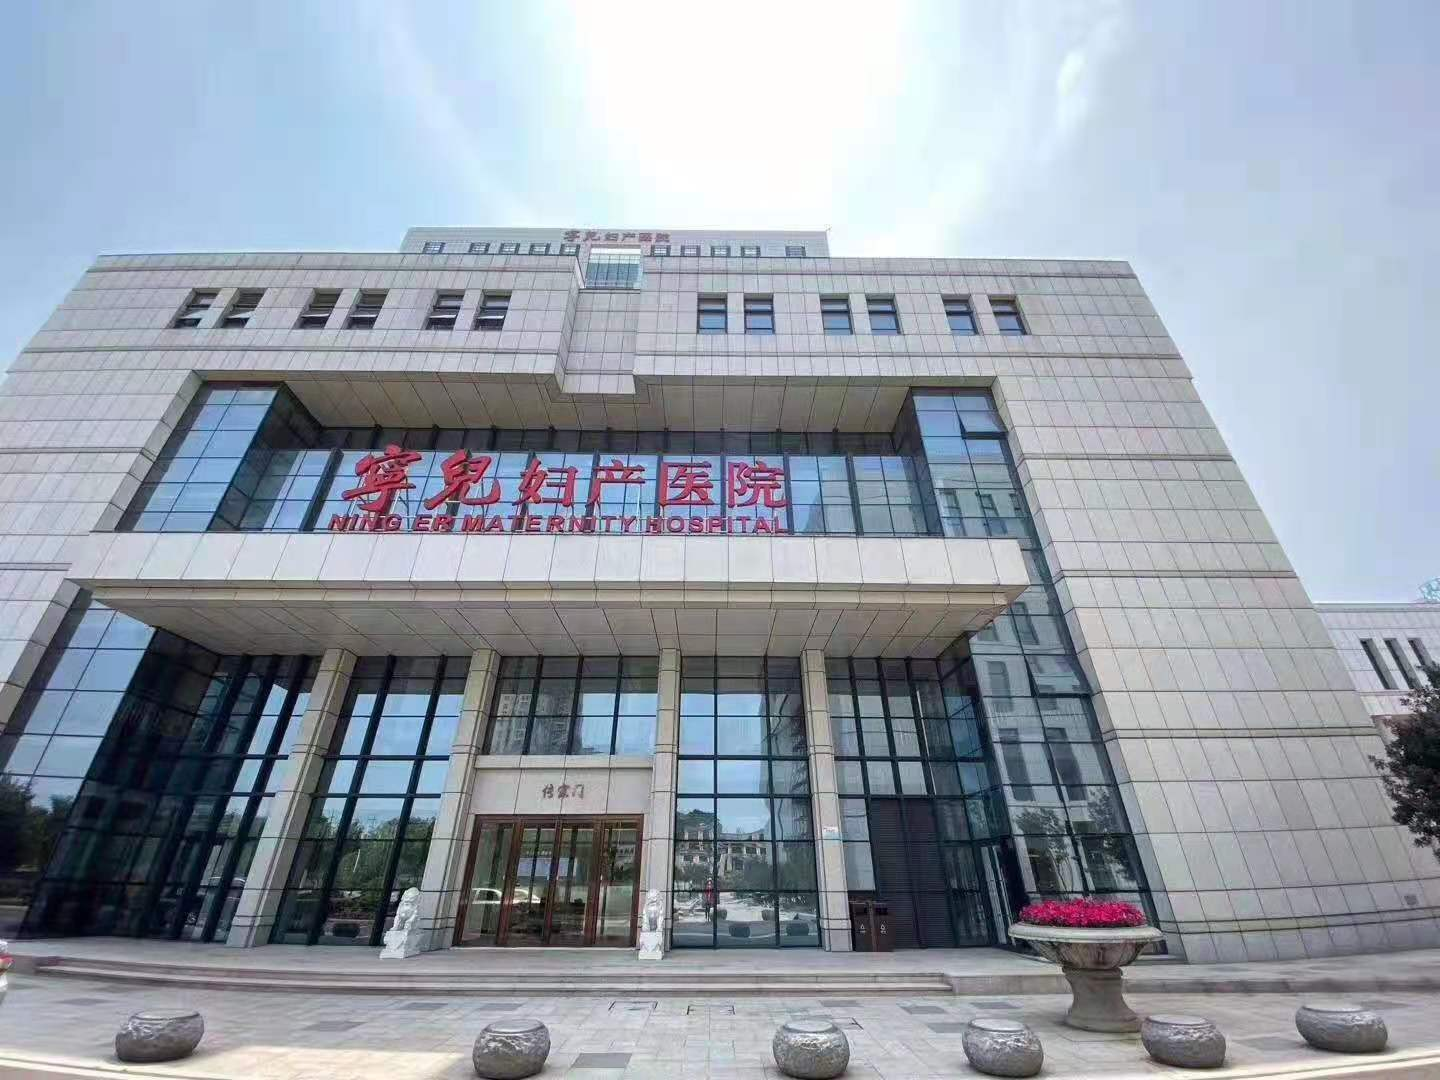 Changsha_Ninger_Maternity_Hospital1.jpg